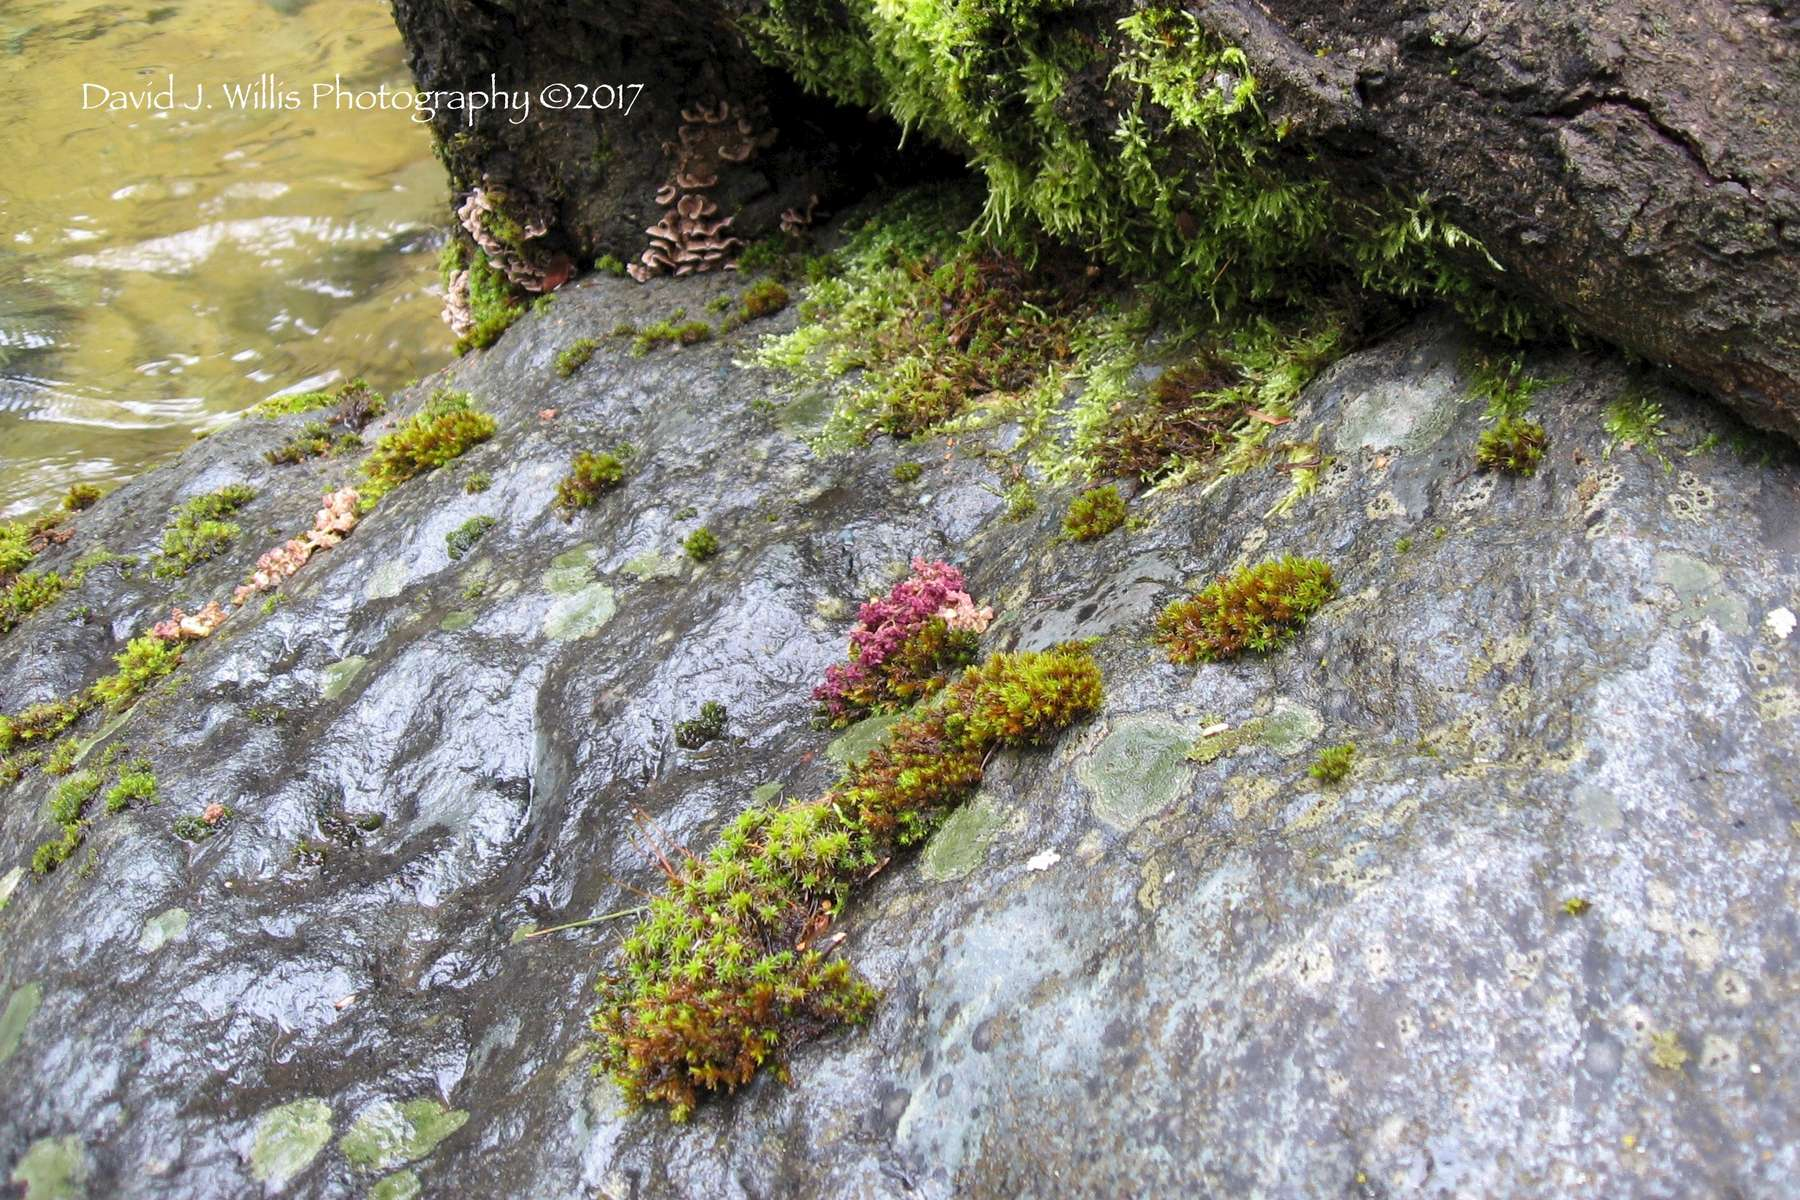 Moss and Rocks on a Seasonal Creek, Undisclosed Location, Plumas County